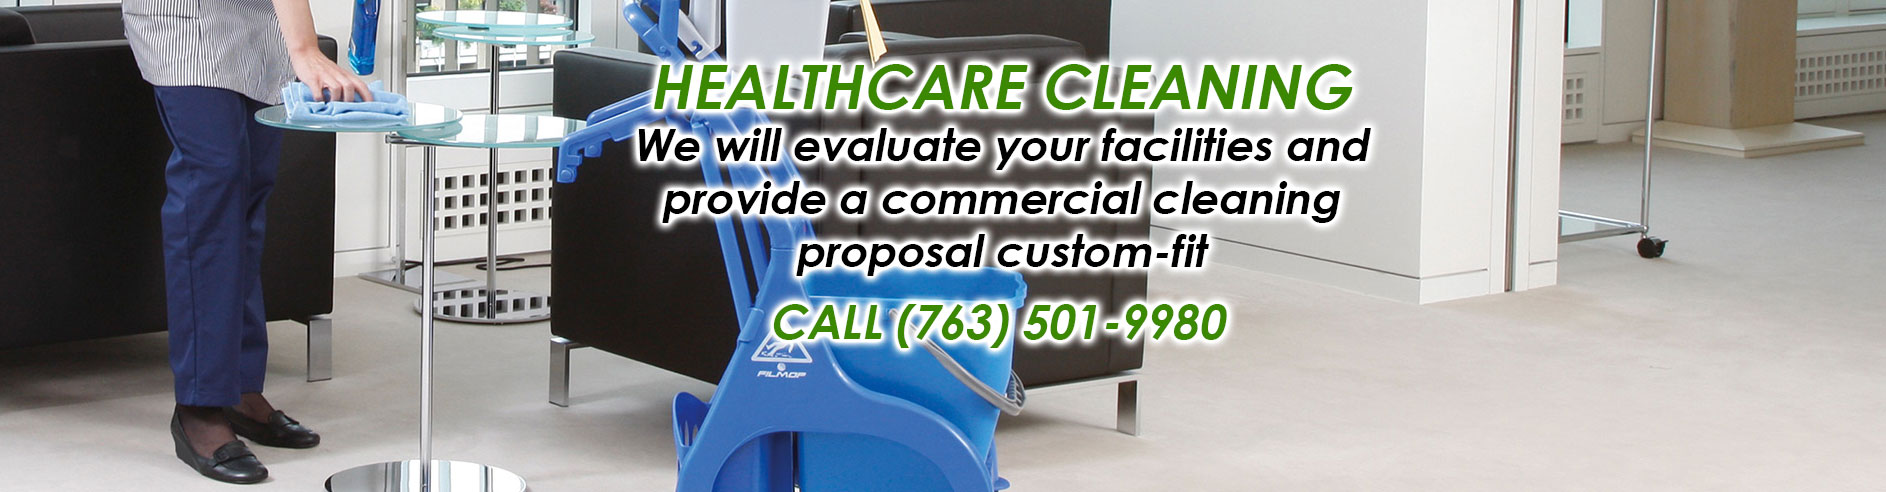 Commercial Cleaning Services Twin Cities Janitorial